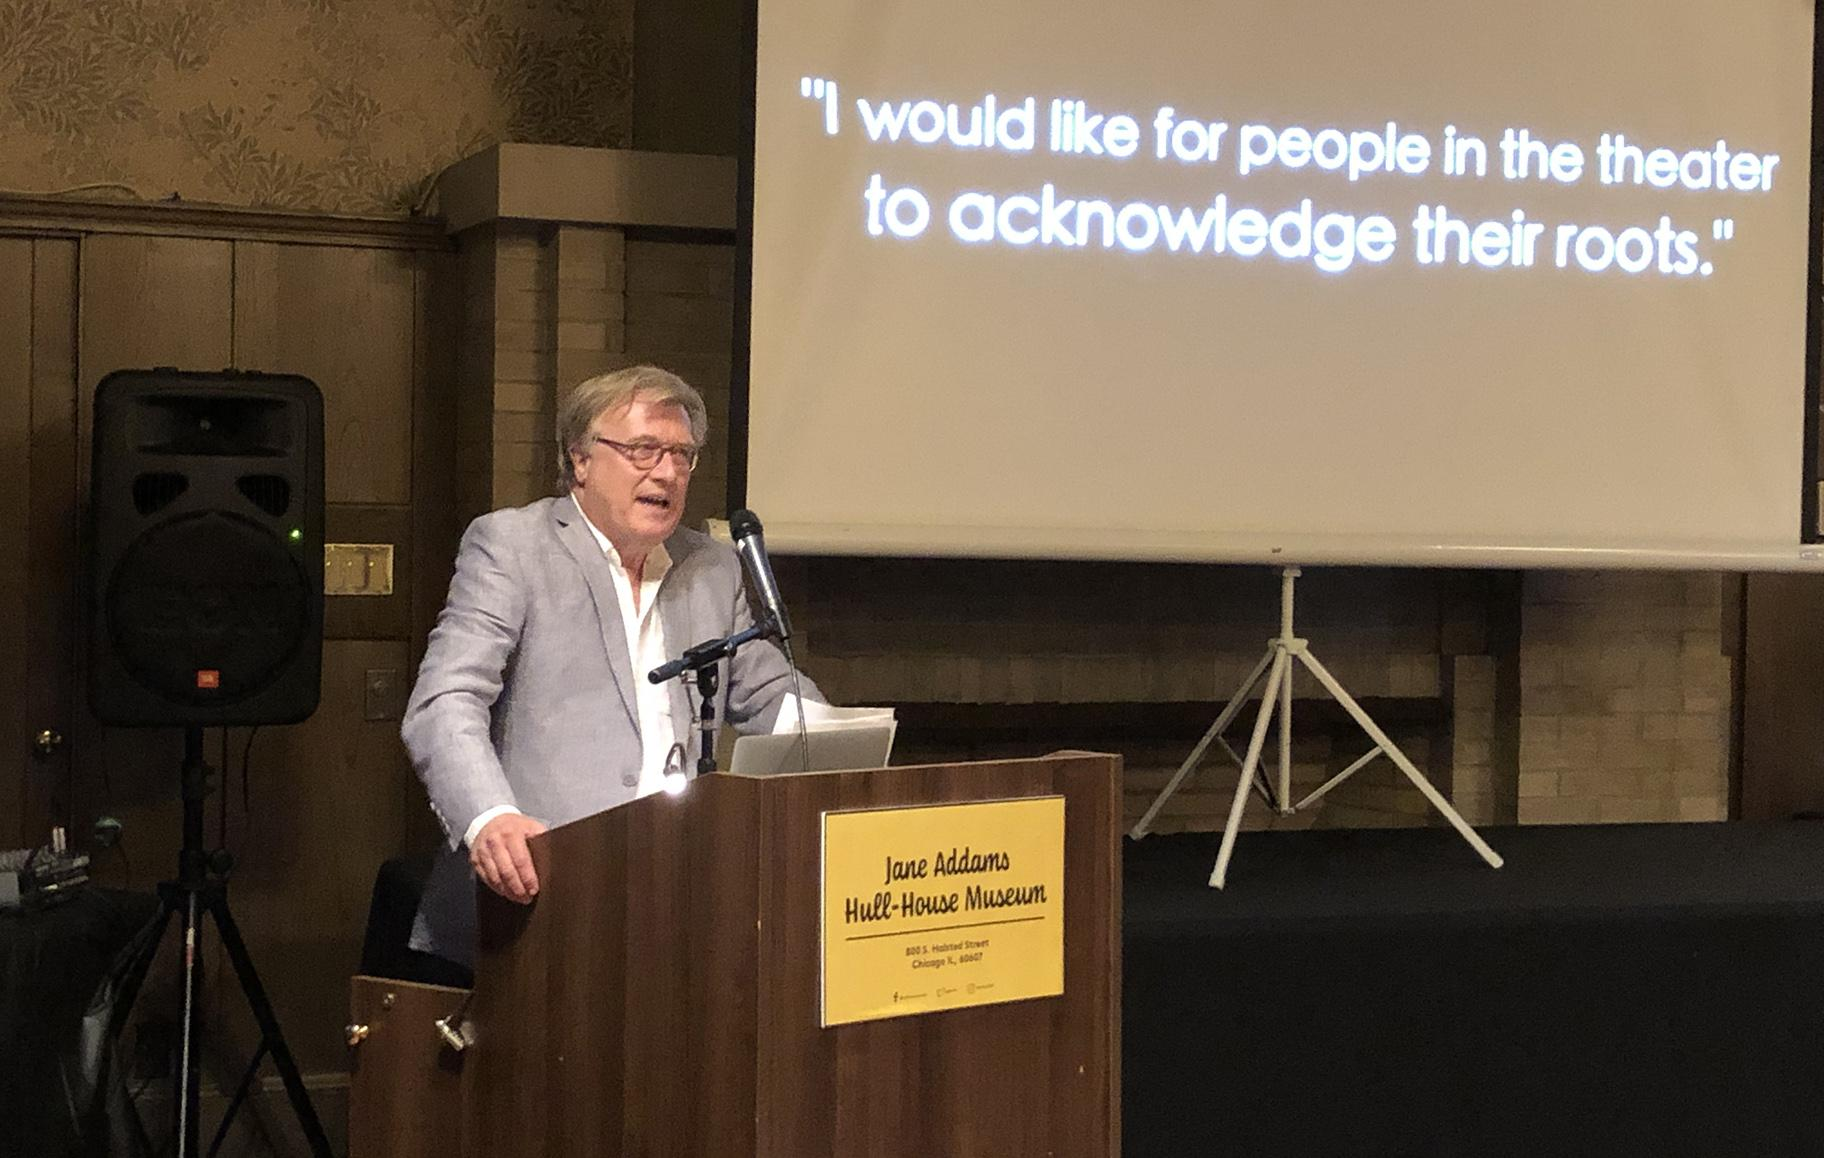 Mark Larson speaks at Hull House on Monday, Aug. 12, 2019. (Photo by Hedy Weiss)